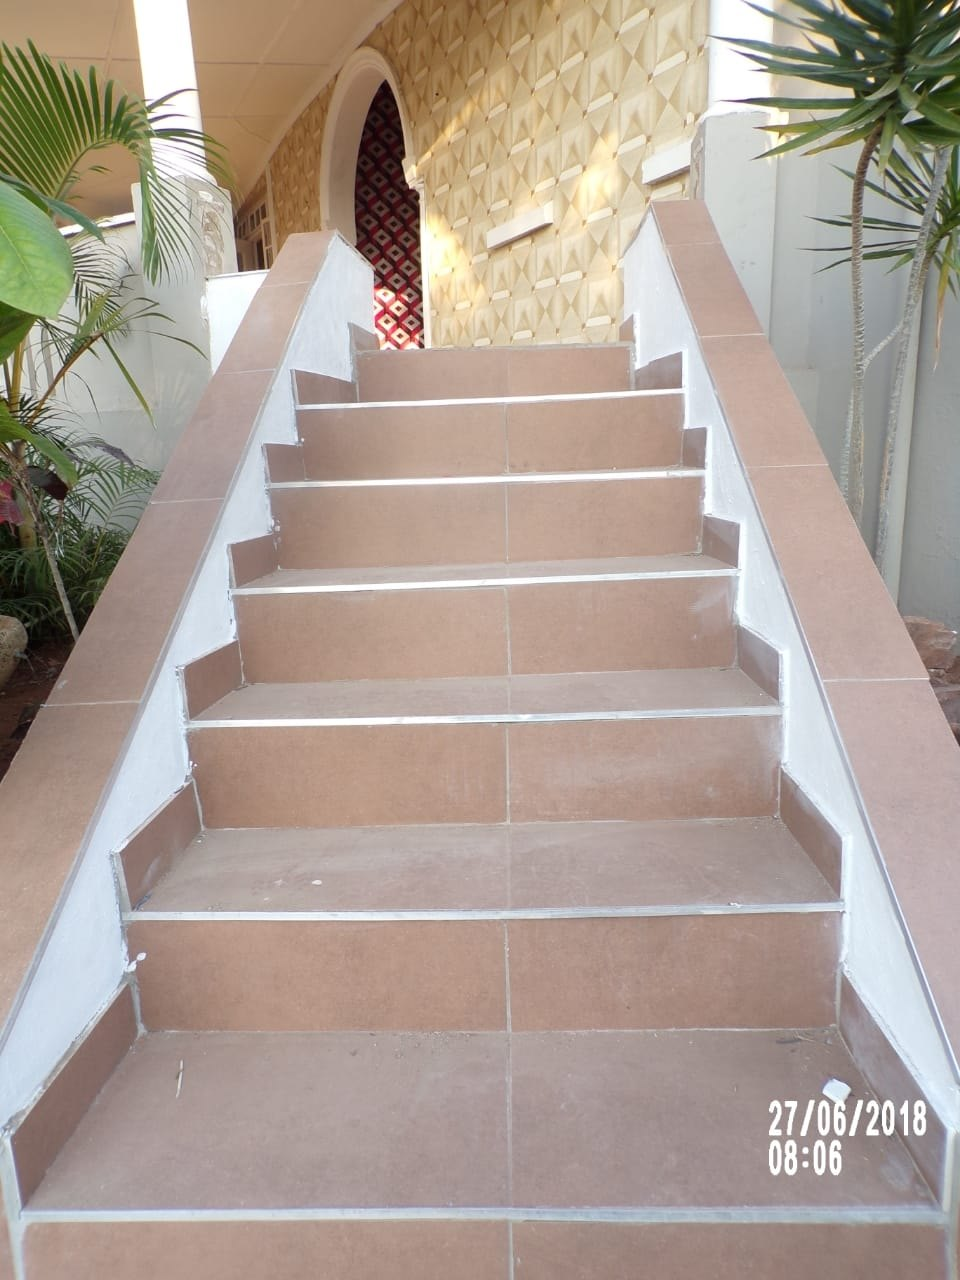 Tiling by Rockden in Durban